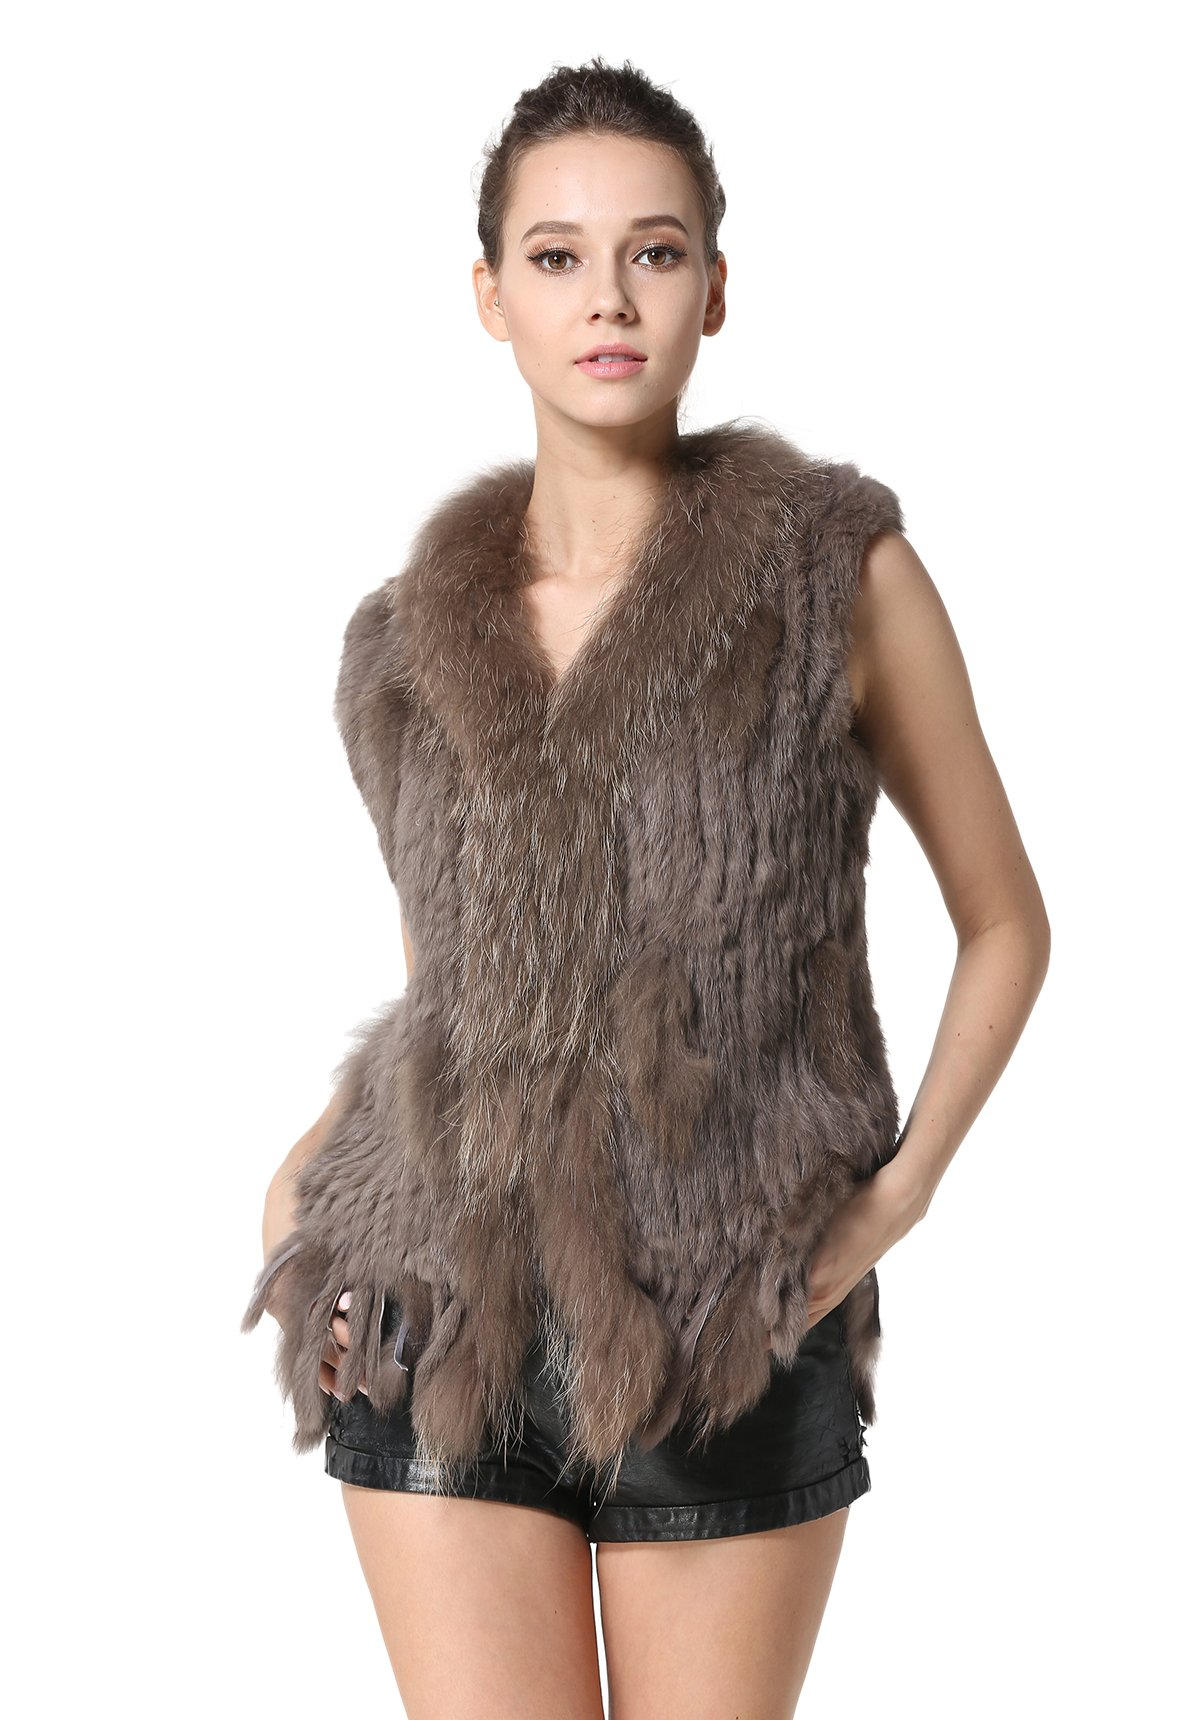 MEEFUR Rabbit Fur Vests with Raccoon Fur Collar Women's Winter Autumn Gilets Real Fur Knitted Waistcoat (US4, Khaki)